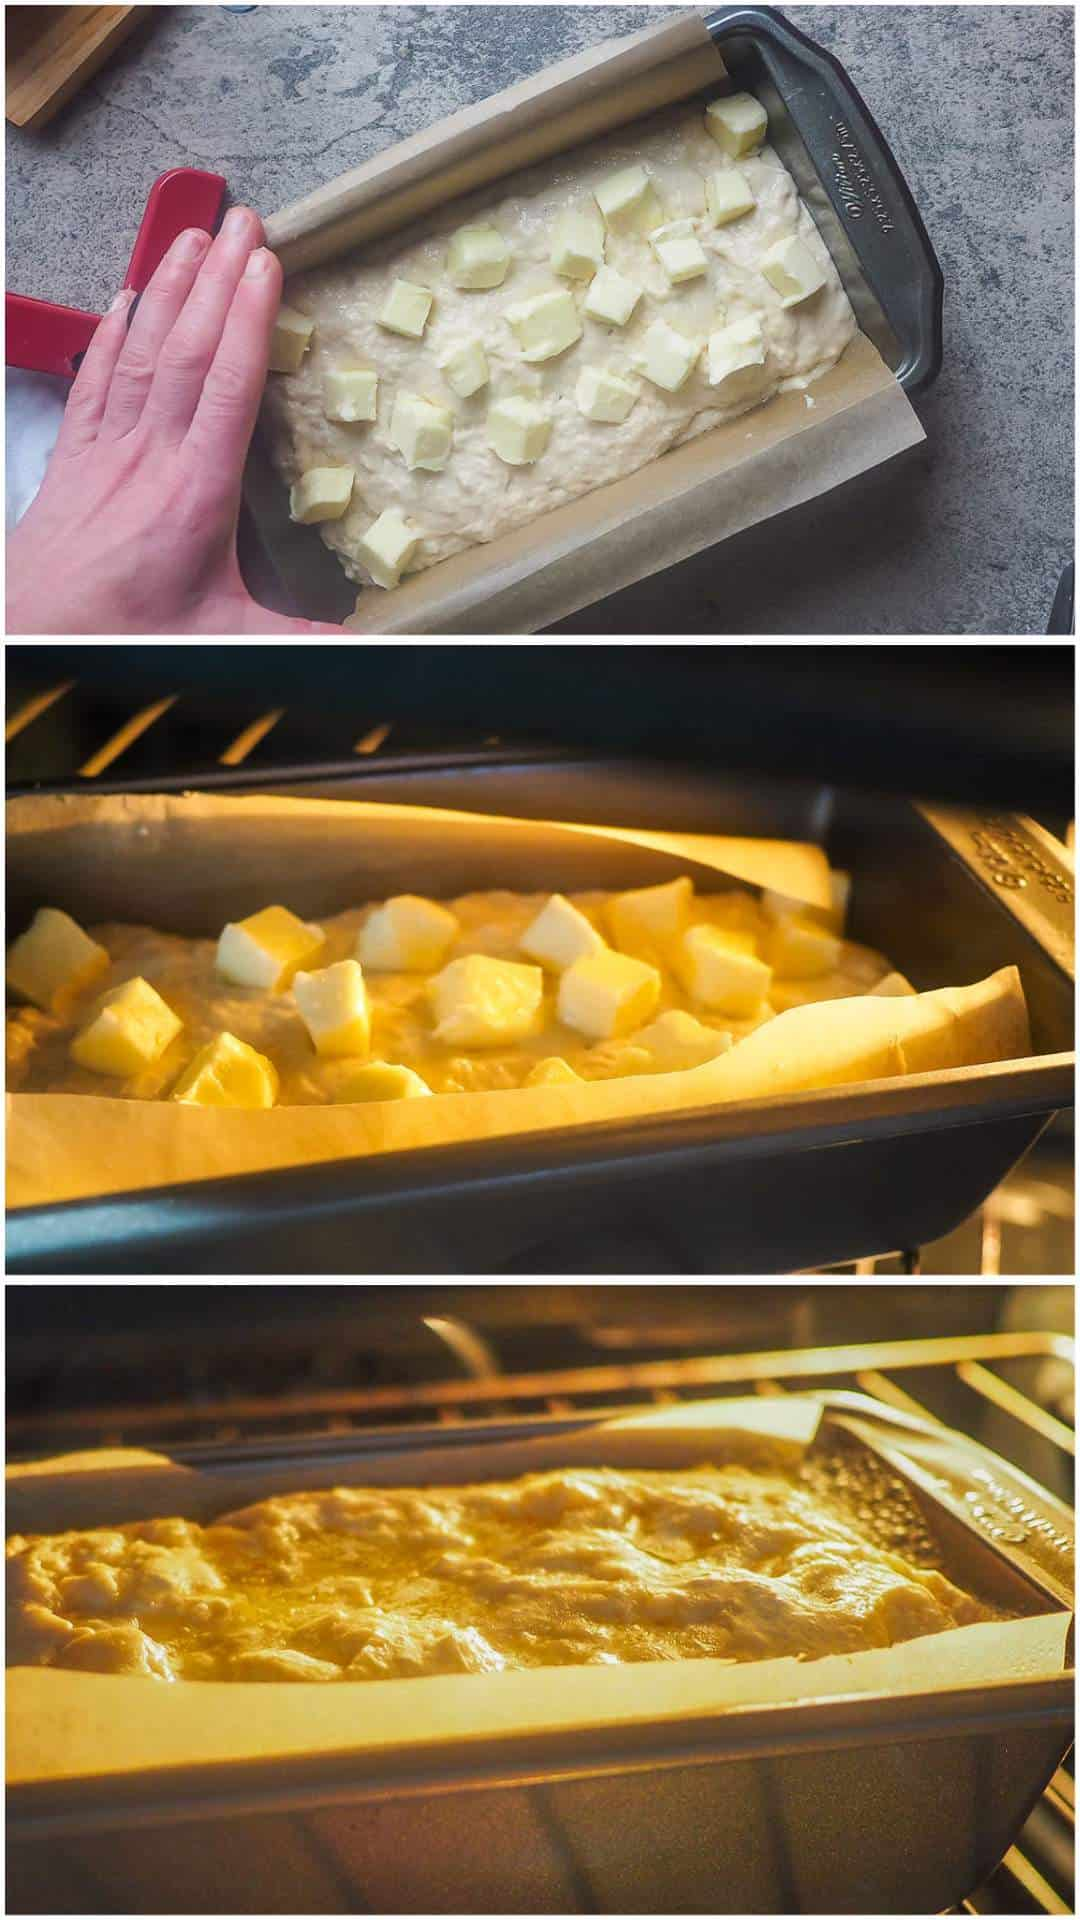 A collage of images showing the process of making beer bread, topped with butter cubes and baking.